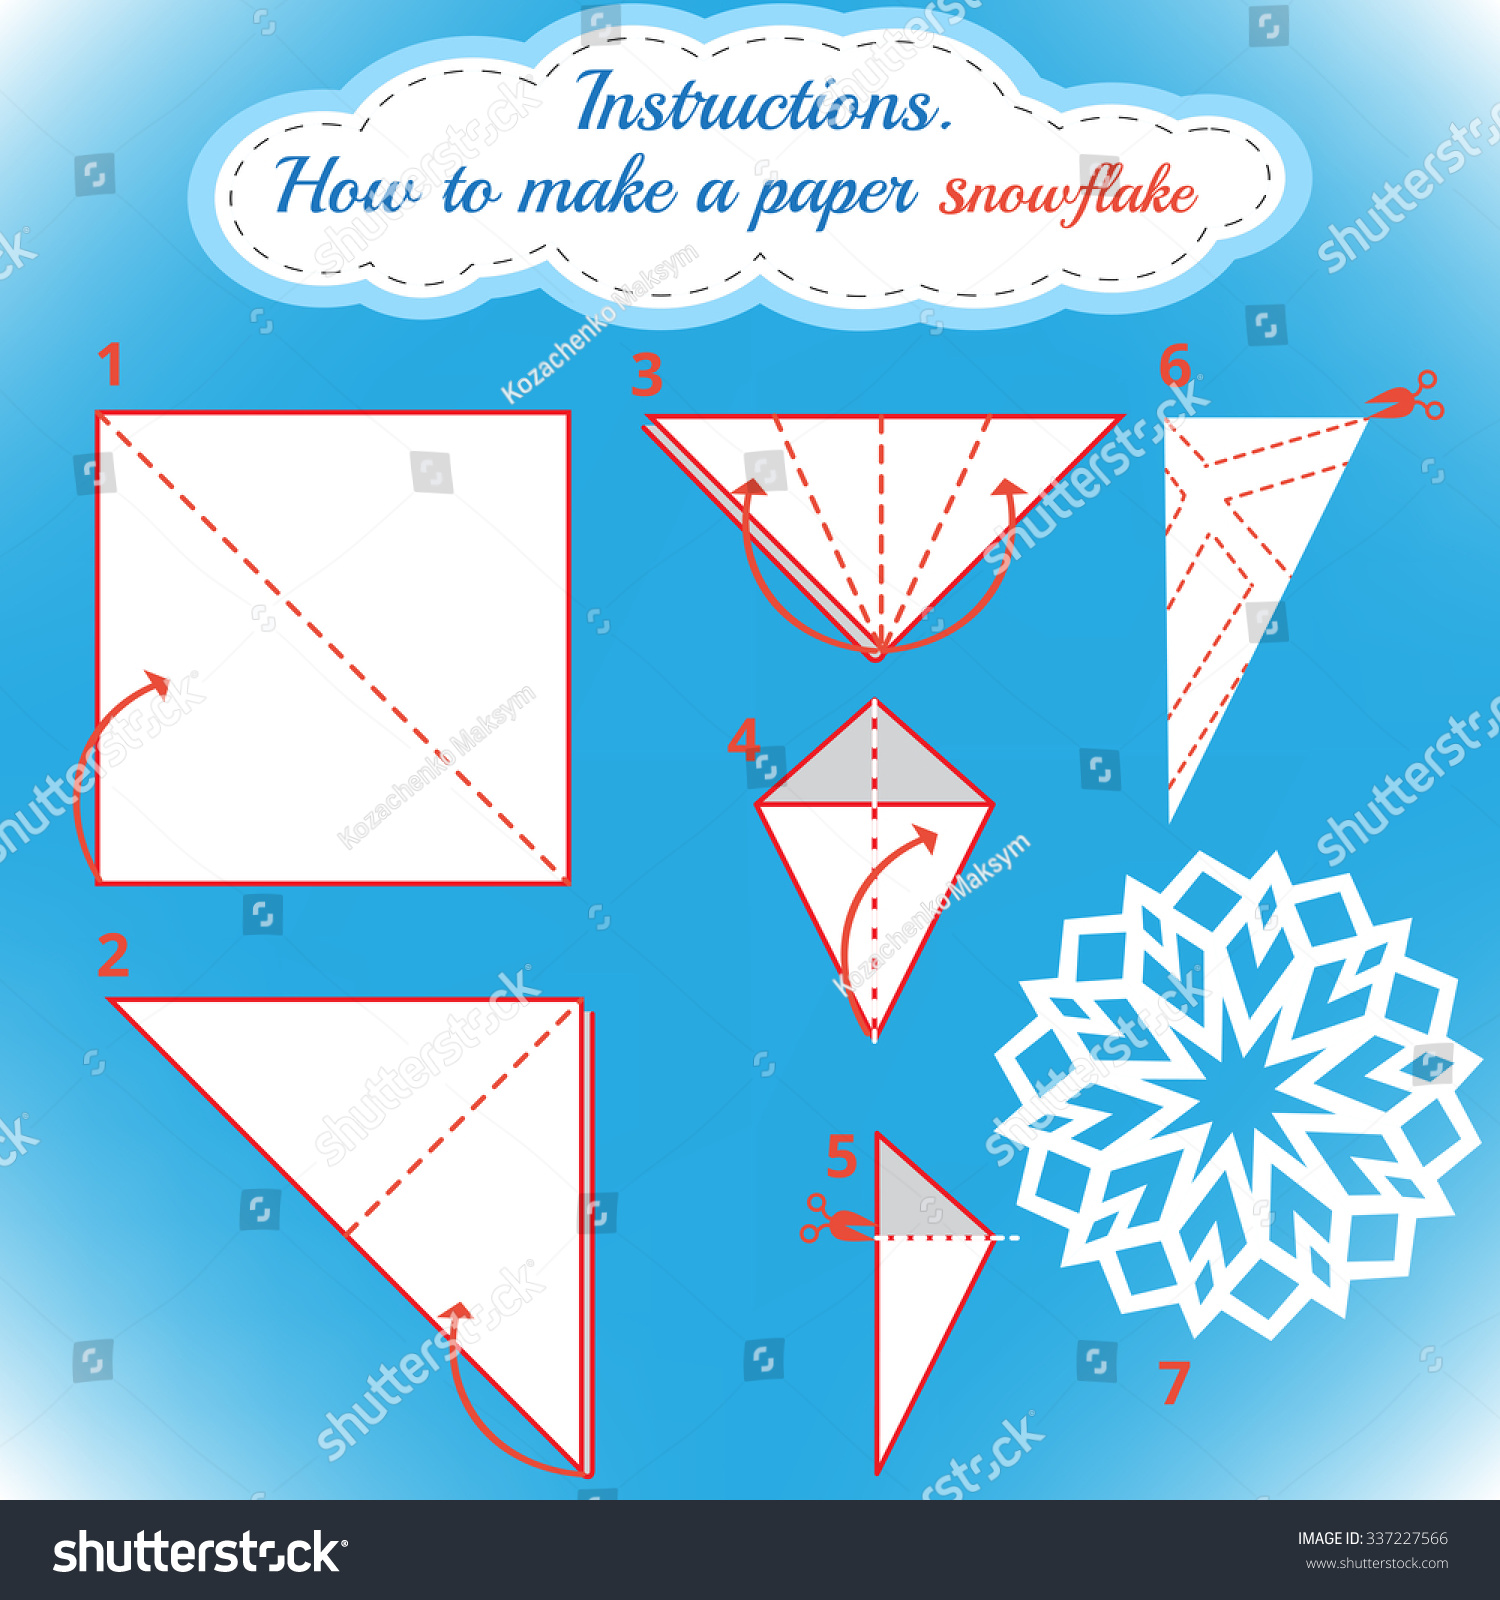 instructions how to make paper snowflake tutorial christmas snowflake step by step vector. Black Bedroom Furniture Sets. Home Design Ideas